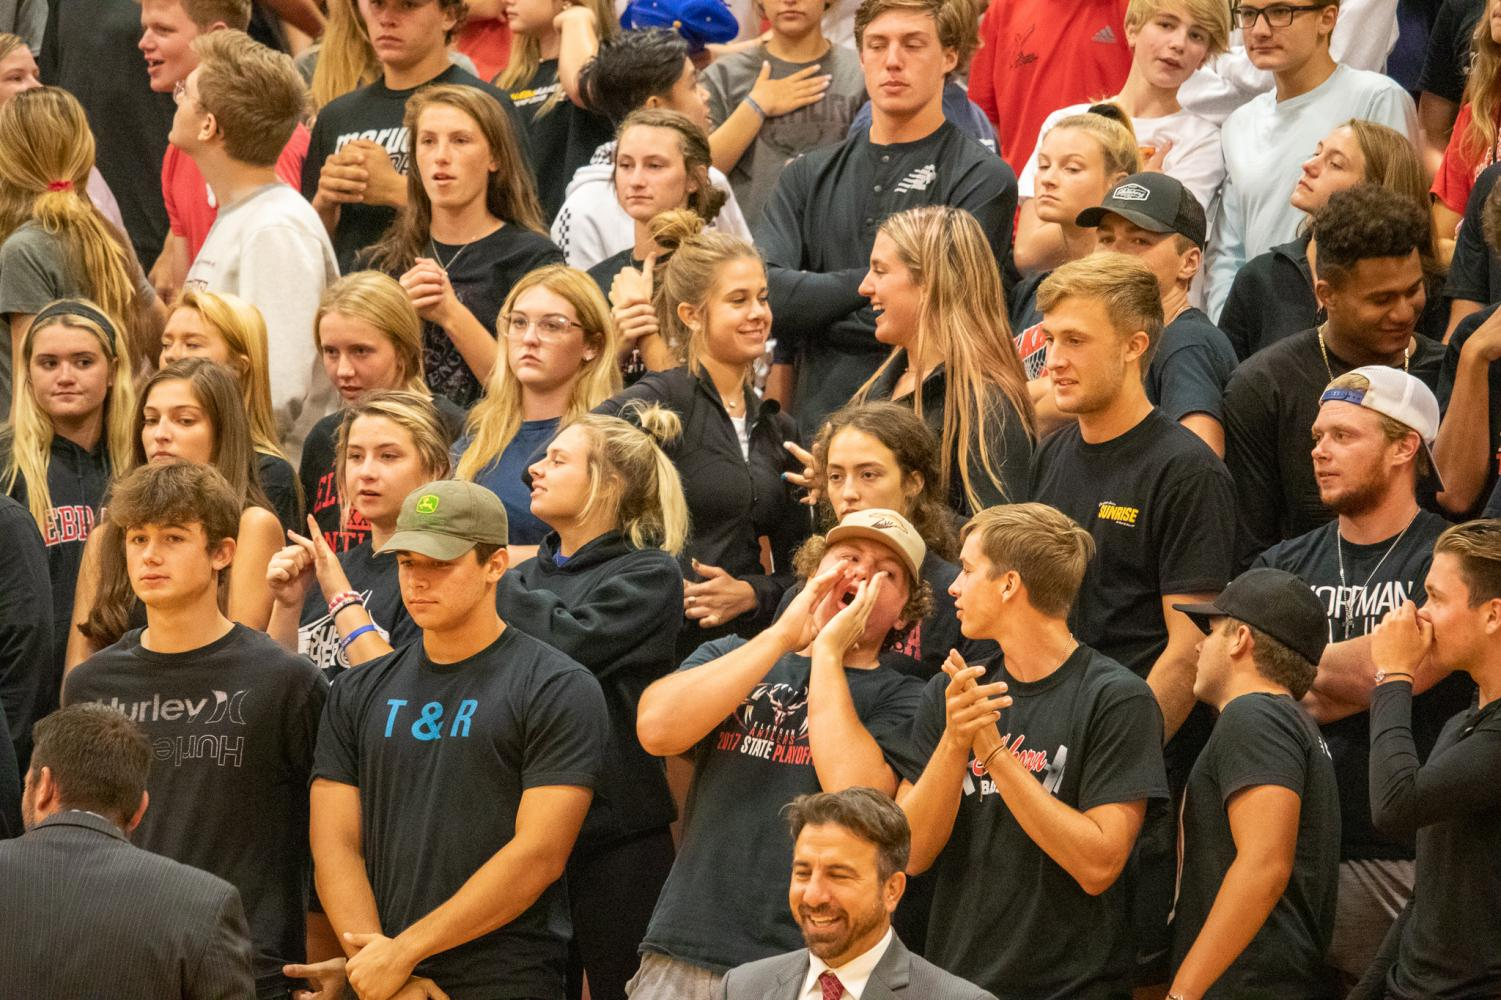 The+Elkhorn+student+section+after+yelling+back+the+%22We%27ve+got+spirit%2C+yes+we+do%22+cheer.+